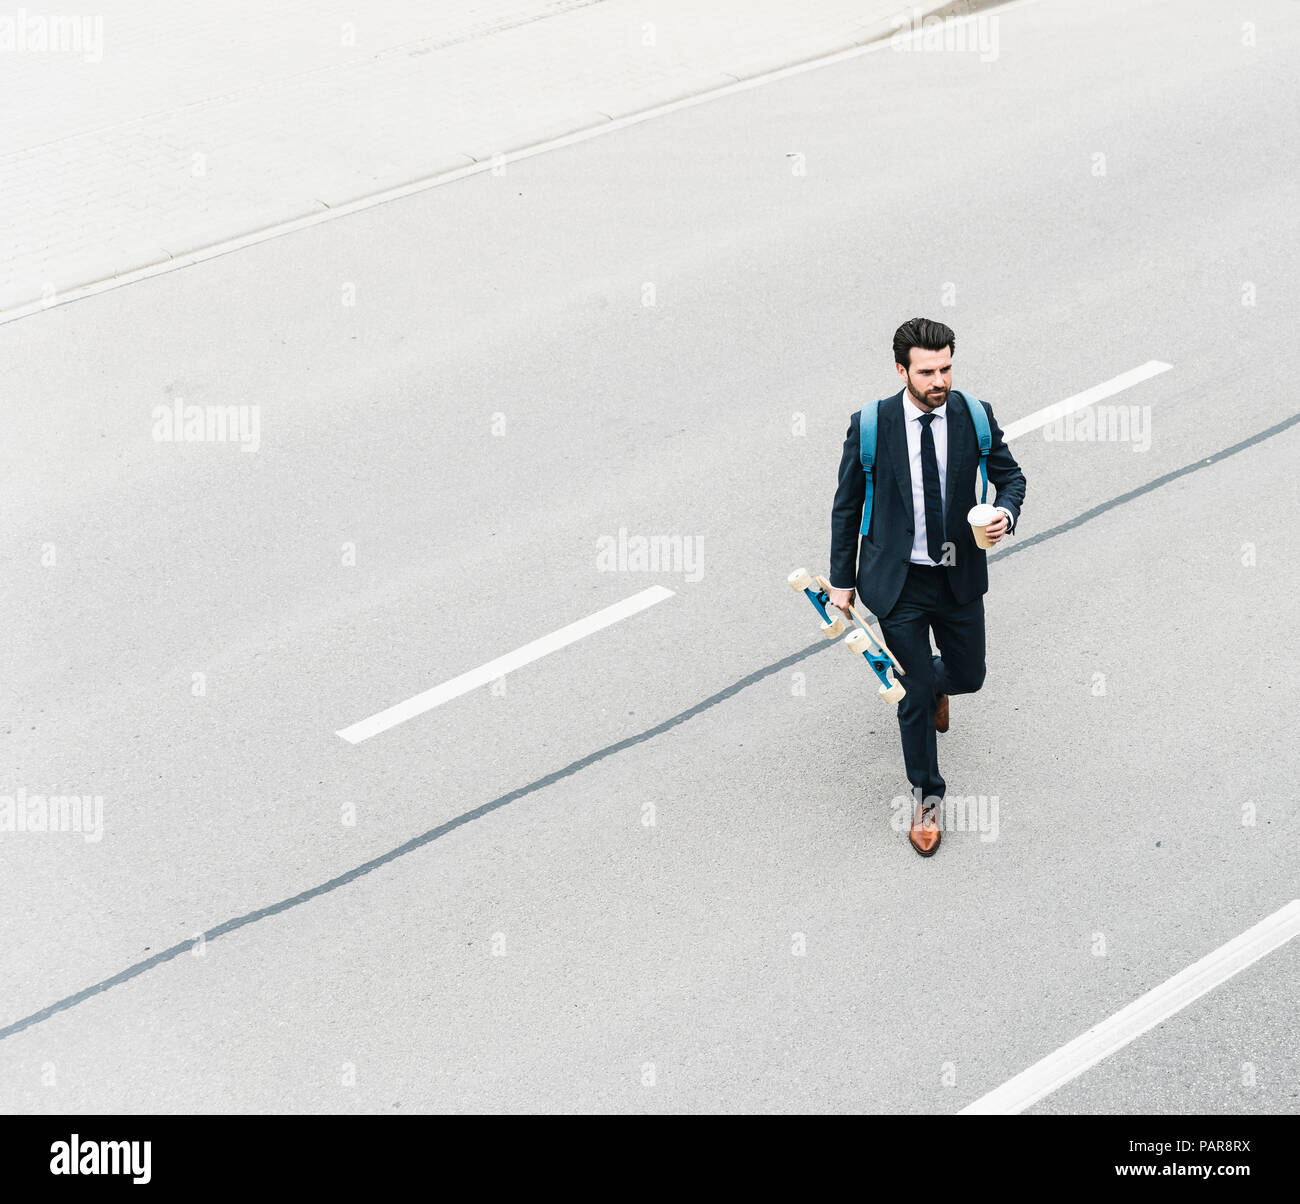 Businessman with takeaway coffee and skateboard walking on the street - Stock Image